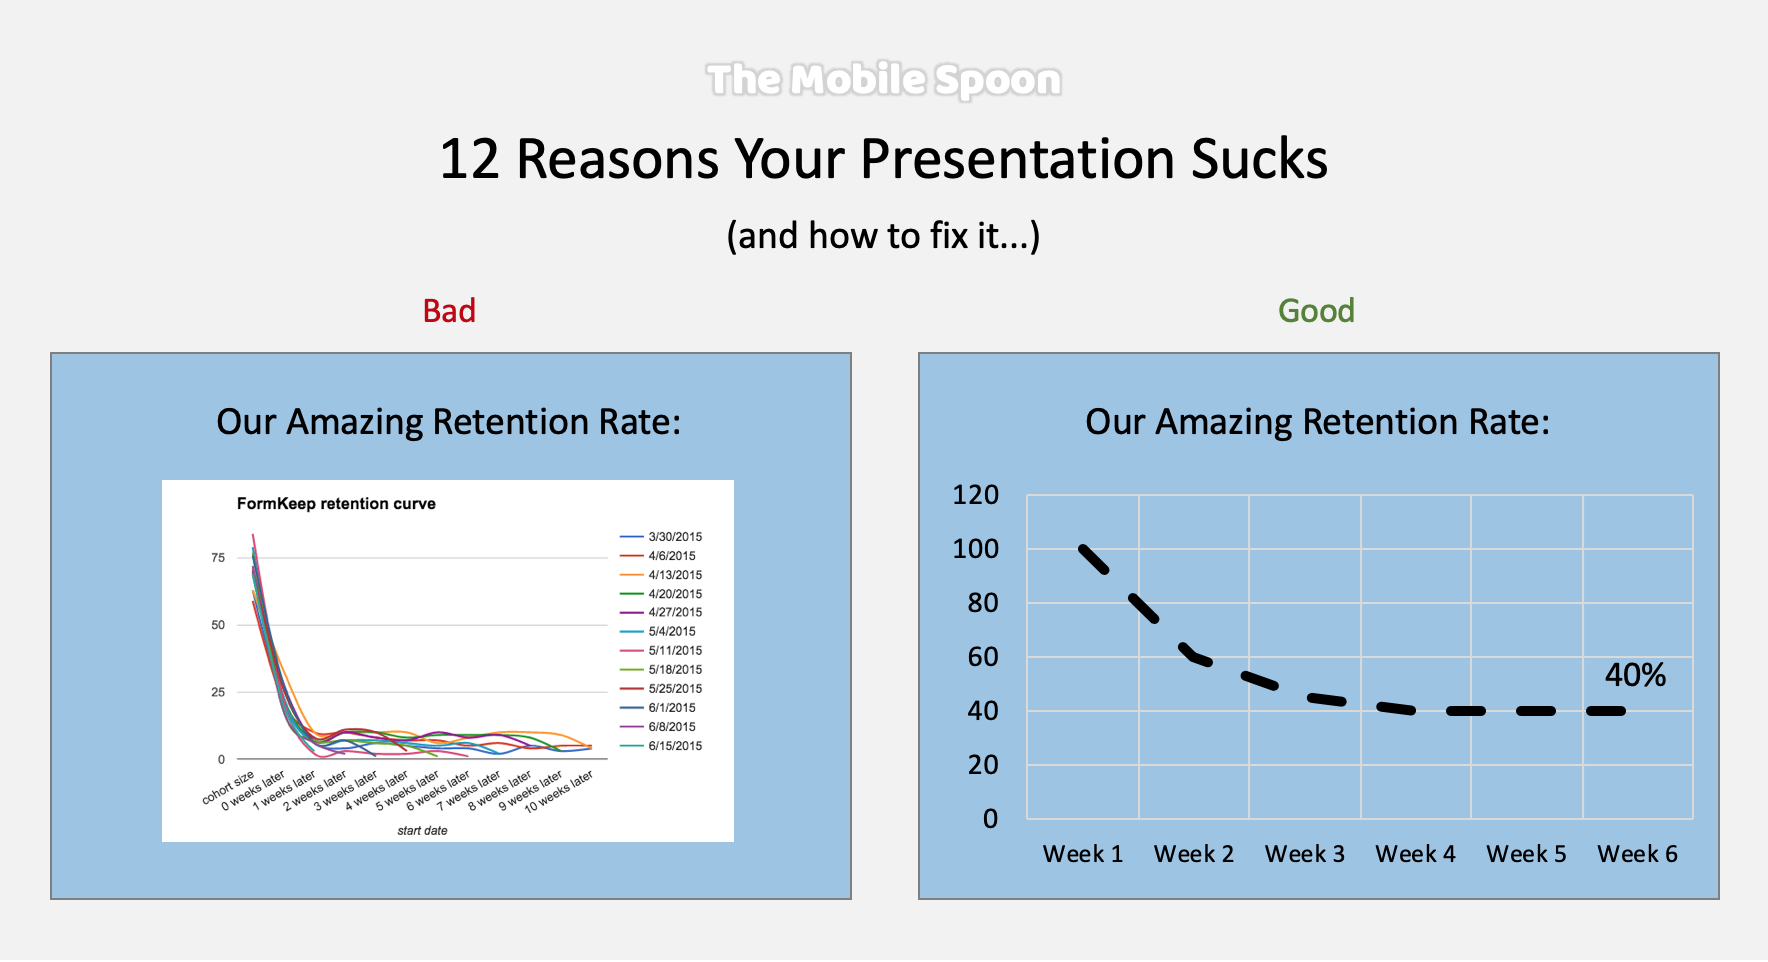 12 reasons your presentation sucks (and how to fix it)